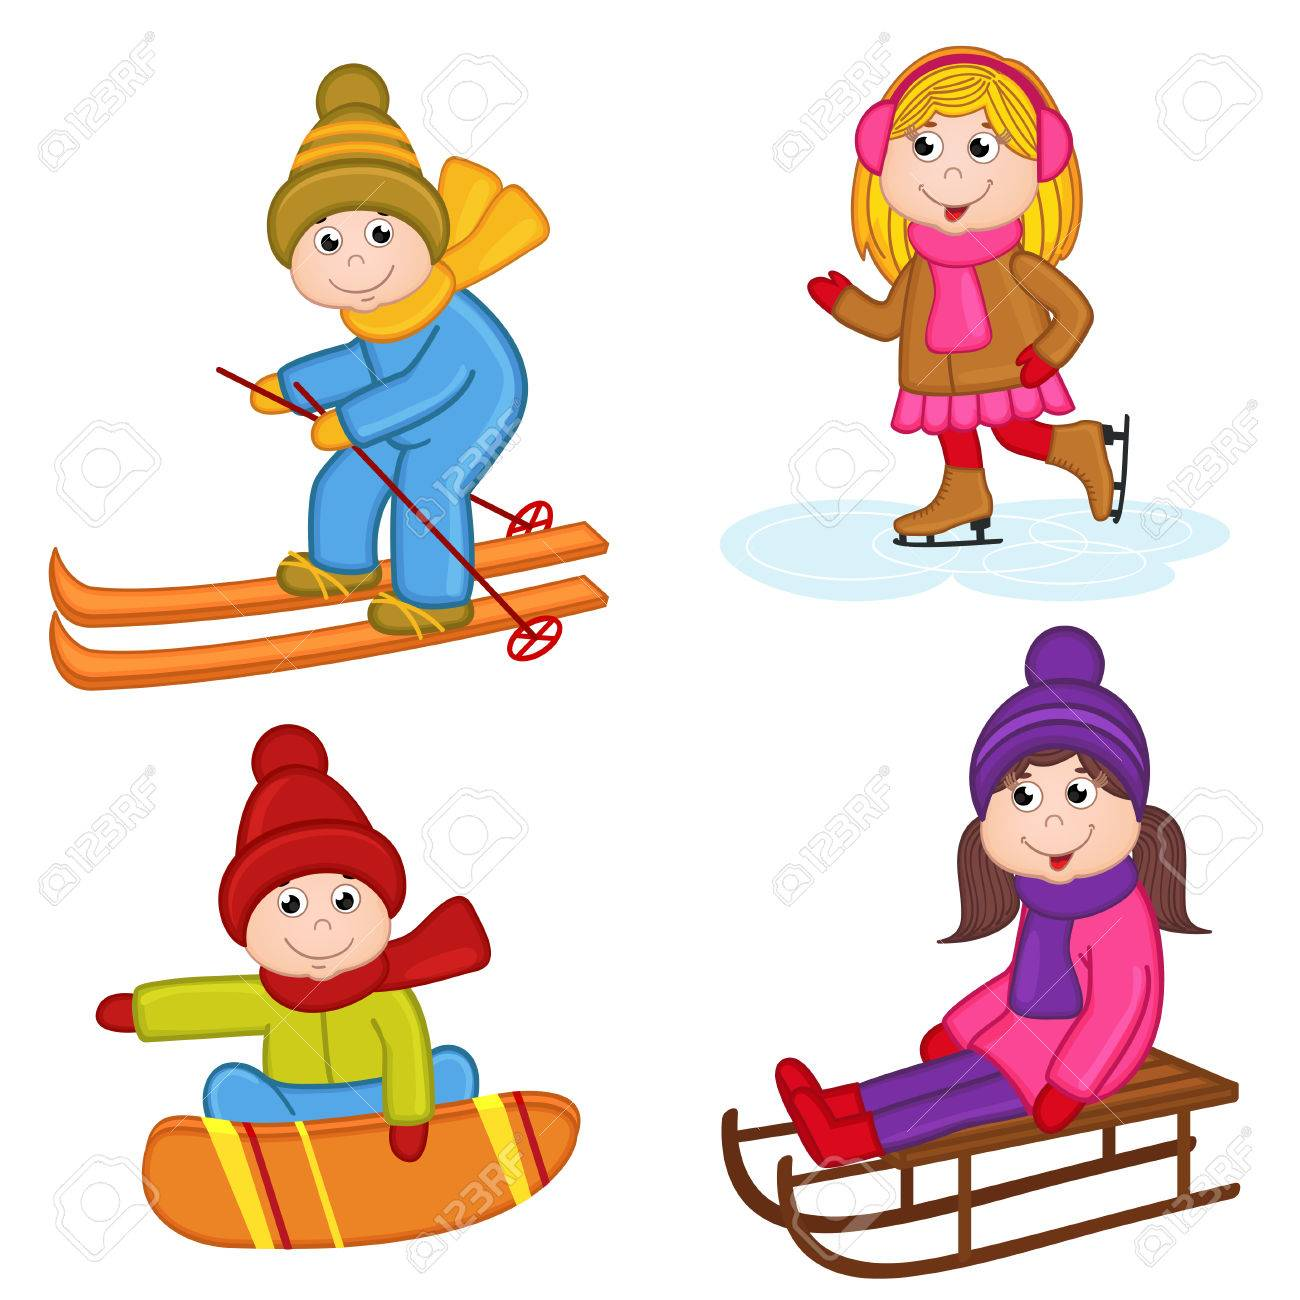 Winter Sports Clipart Free Download Clip Art.